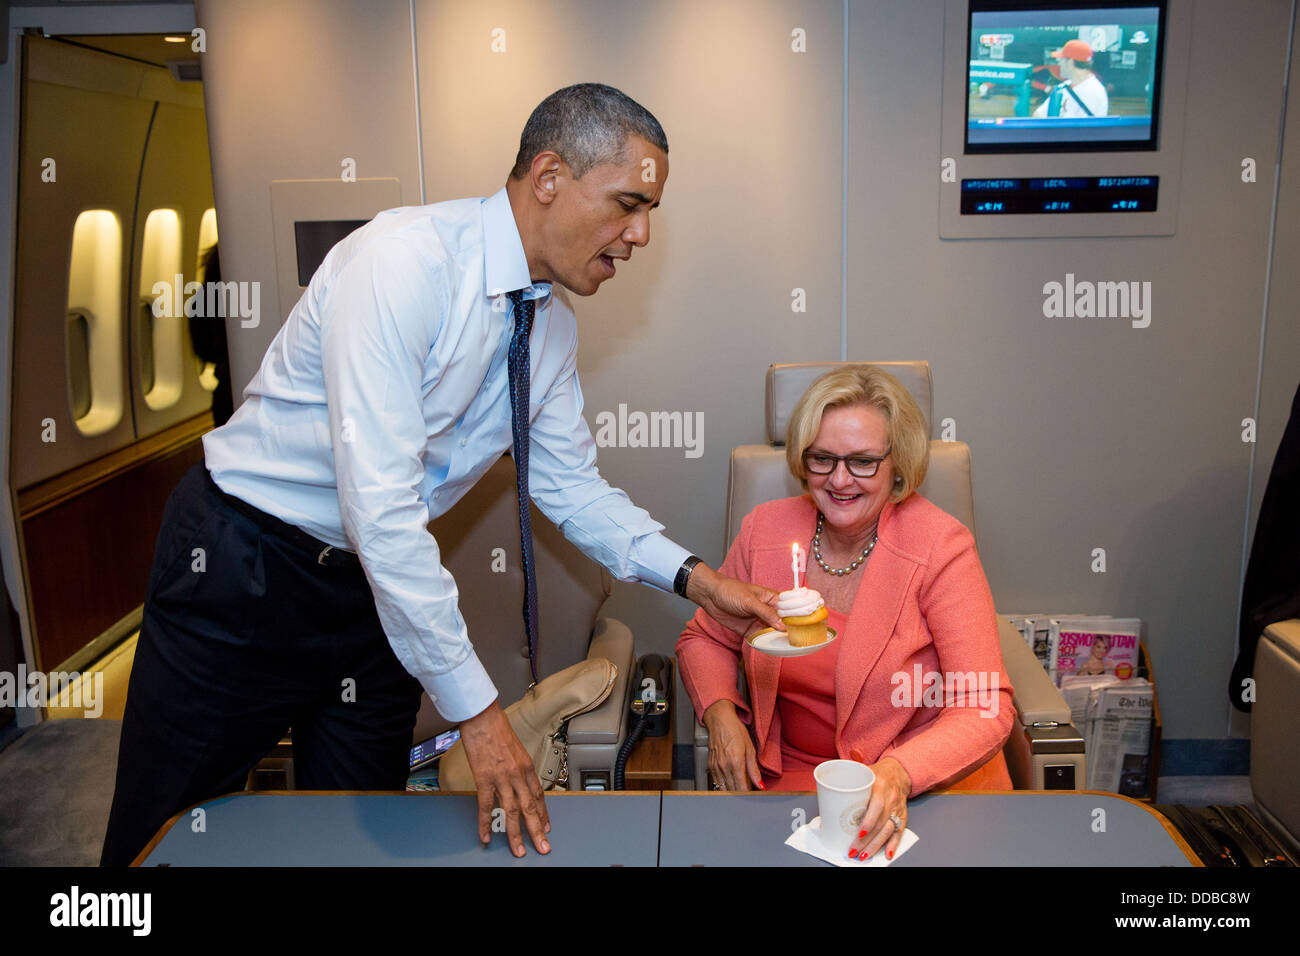 US President Barack Obama presents Senator Claire McCaskill with a birthday cupcake aboard Air Force One July 24, - Stock Image